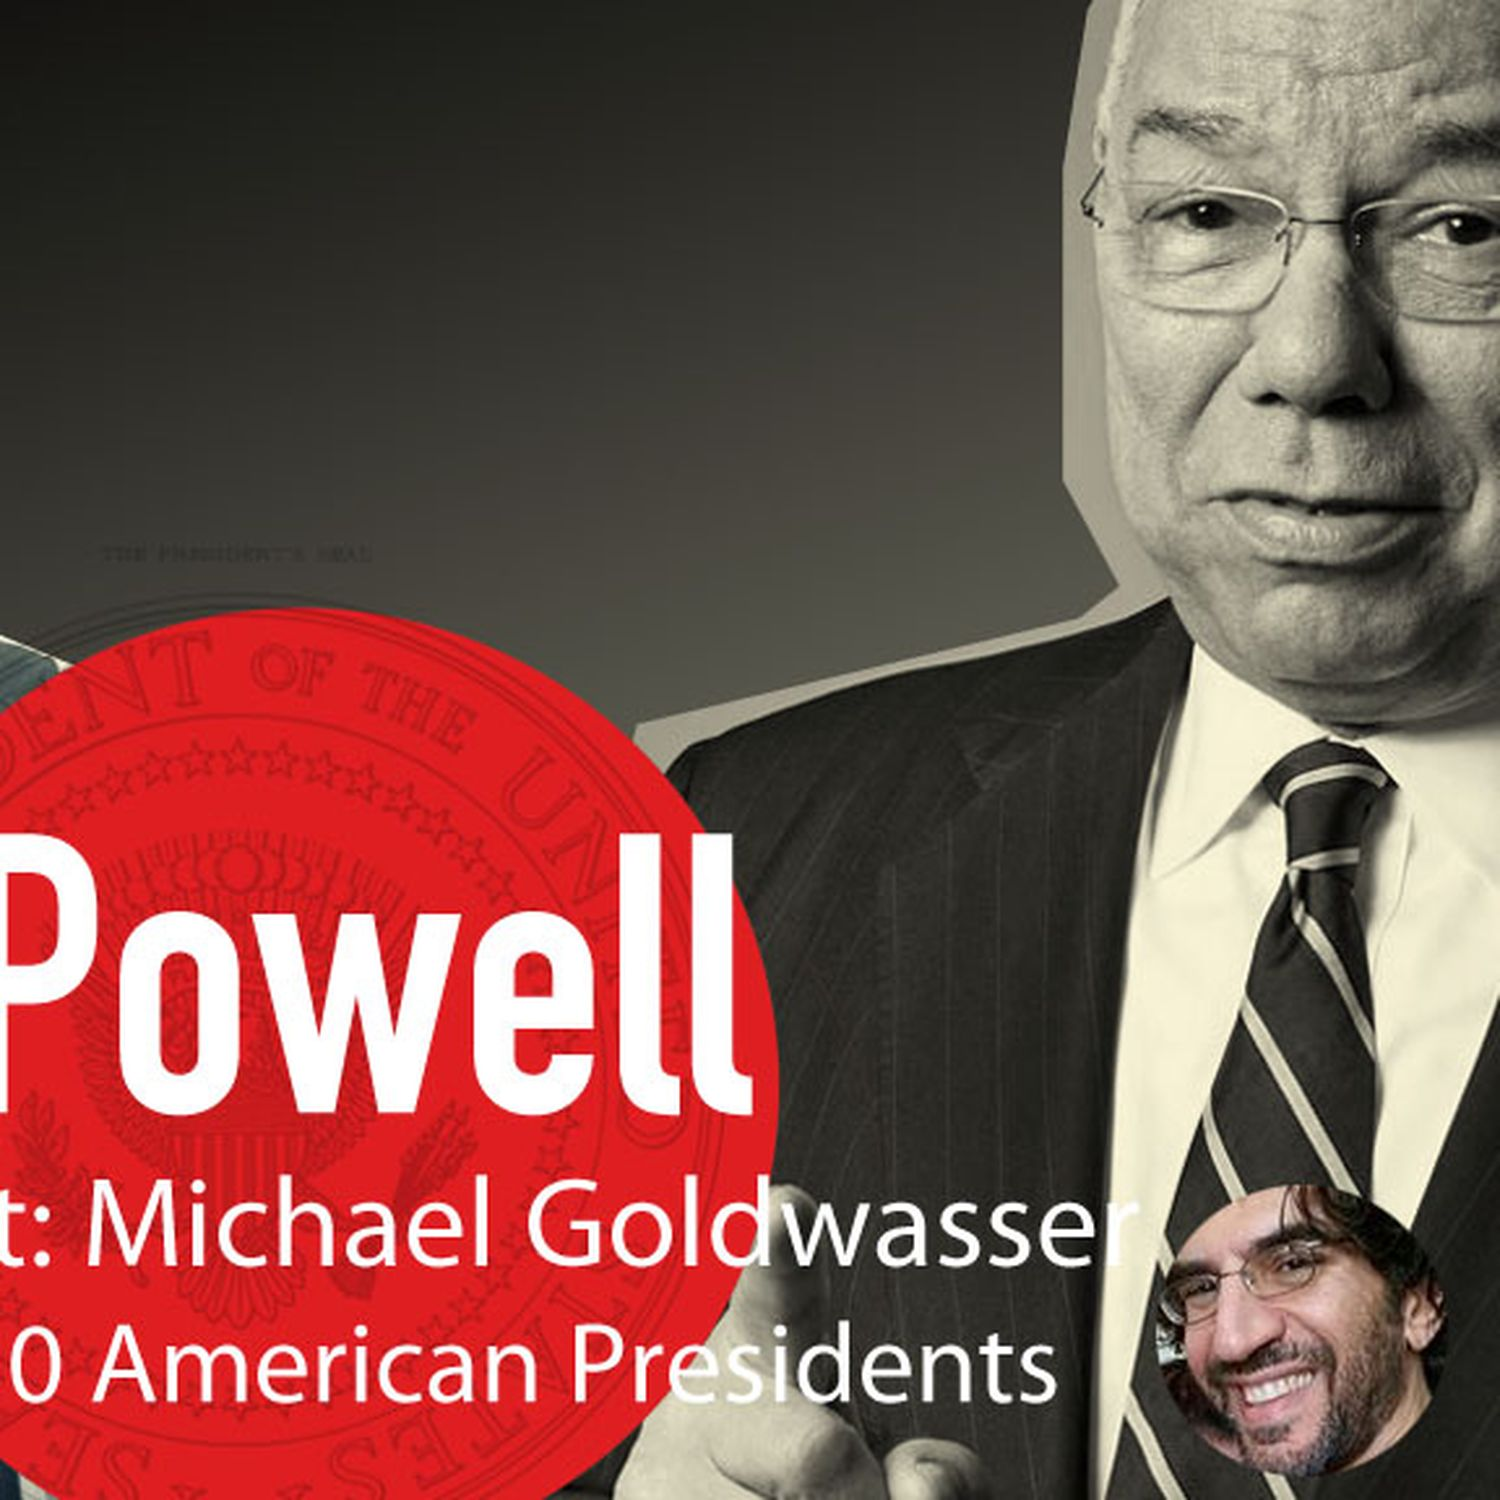 EP:4 – Powell – Micheal Goldwasser – How the shows are made